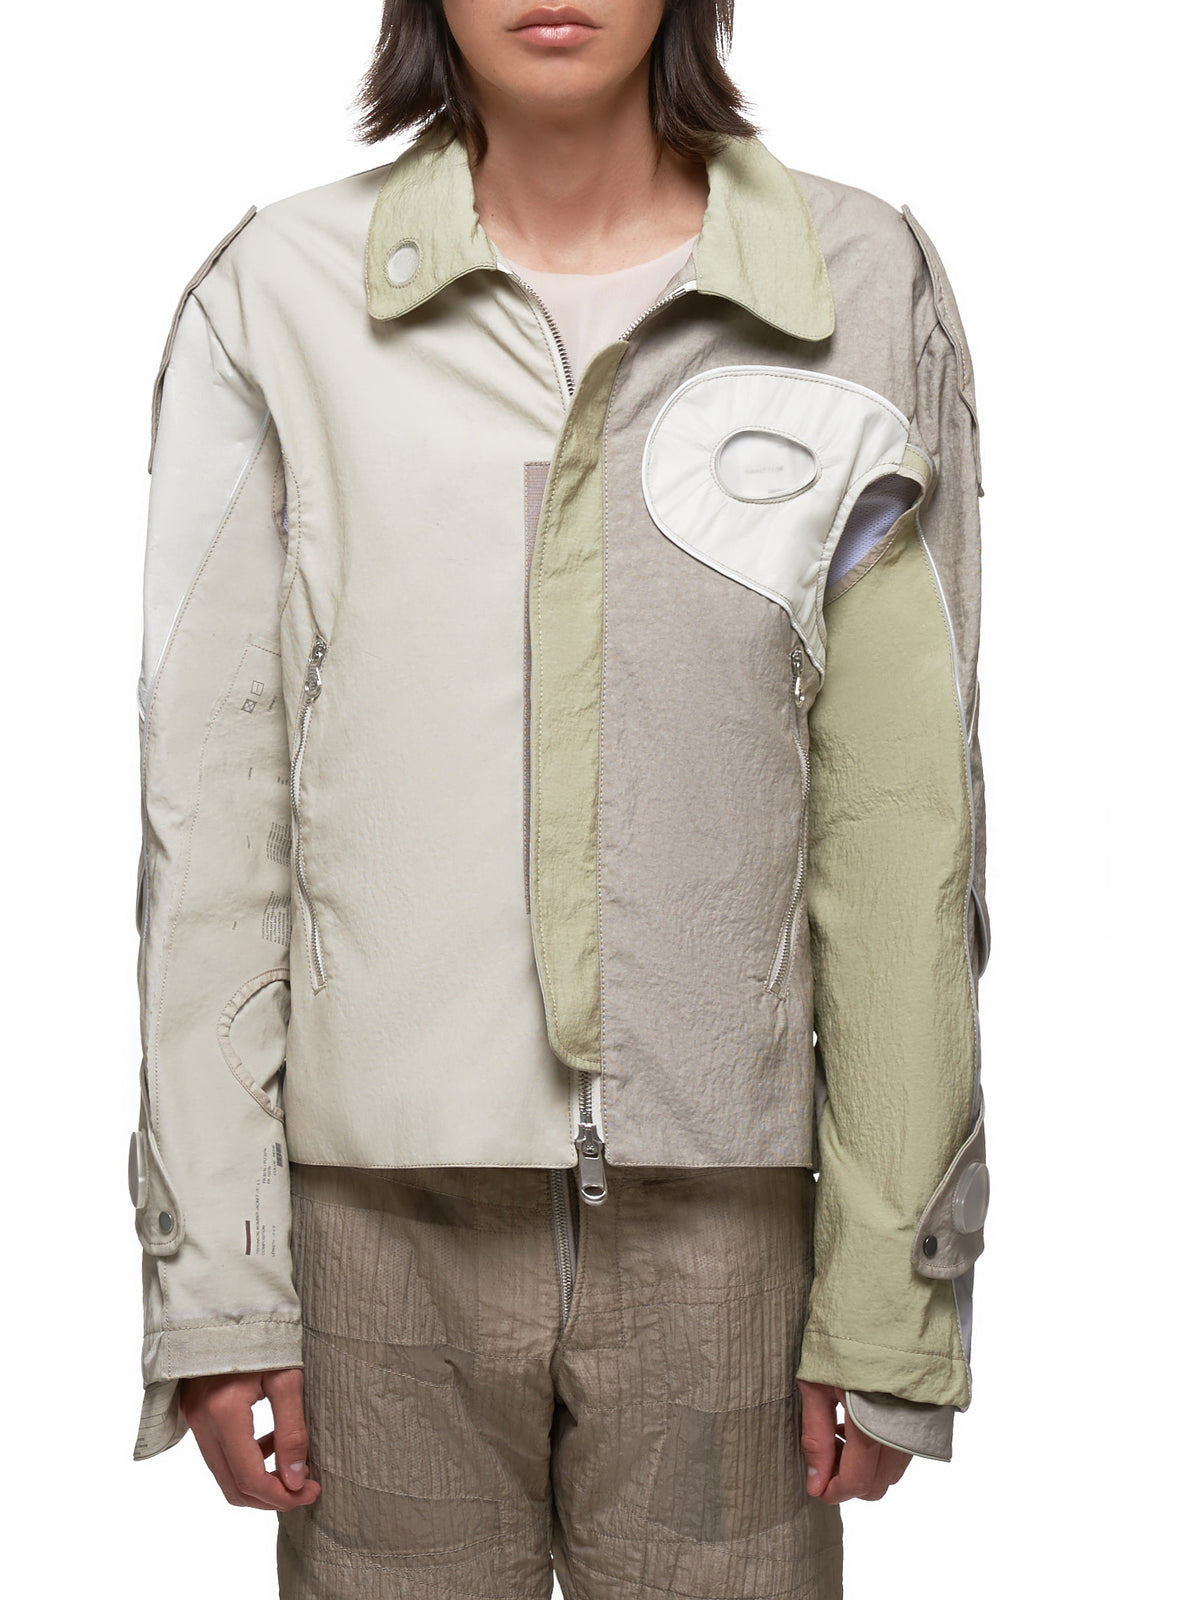 Technical Bomber Jacket (NJHNIT11-BE-MILITARY)